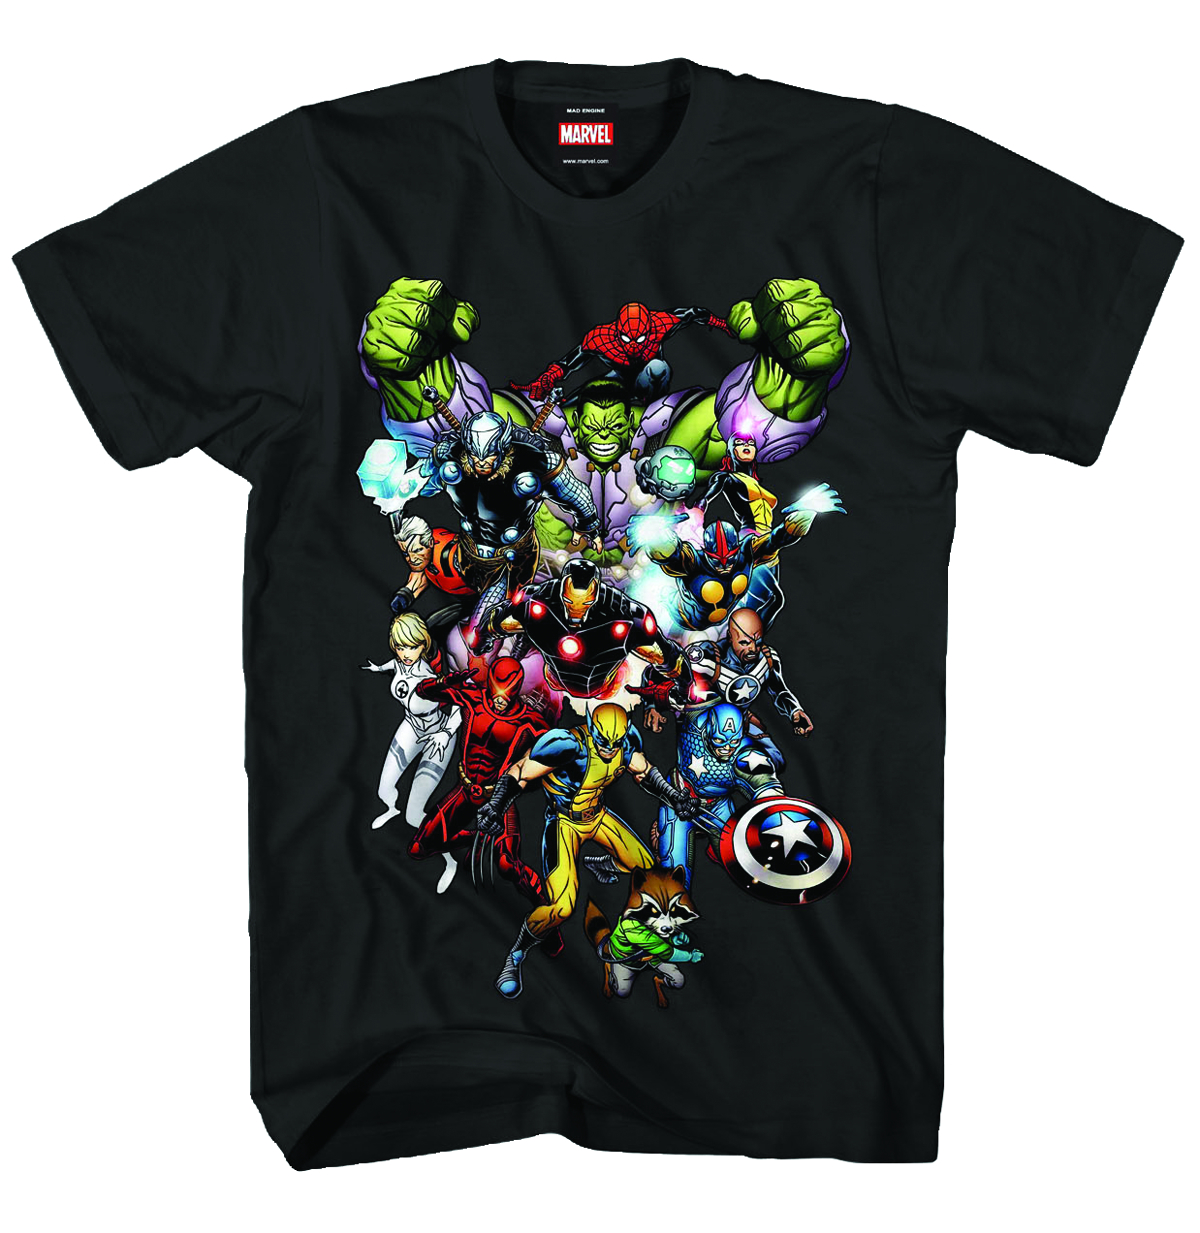 MARVEL HEROES MARVEL NOW PX BLK T/S XXL